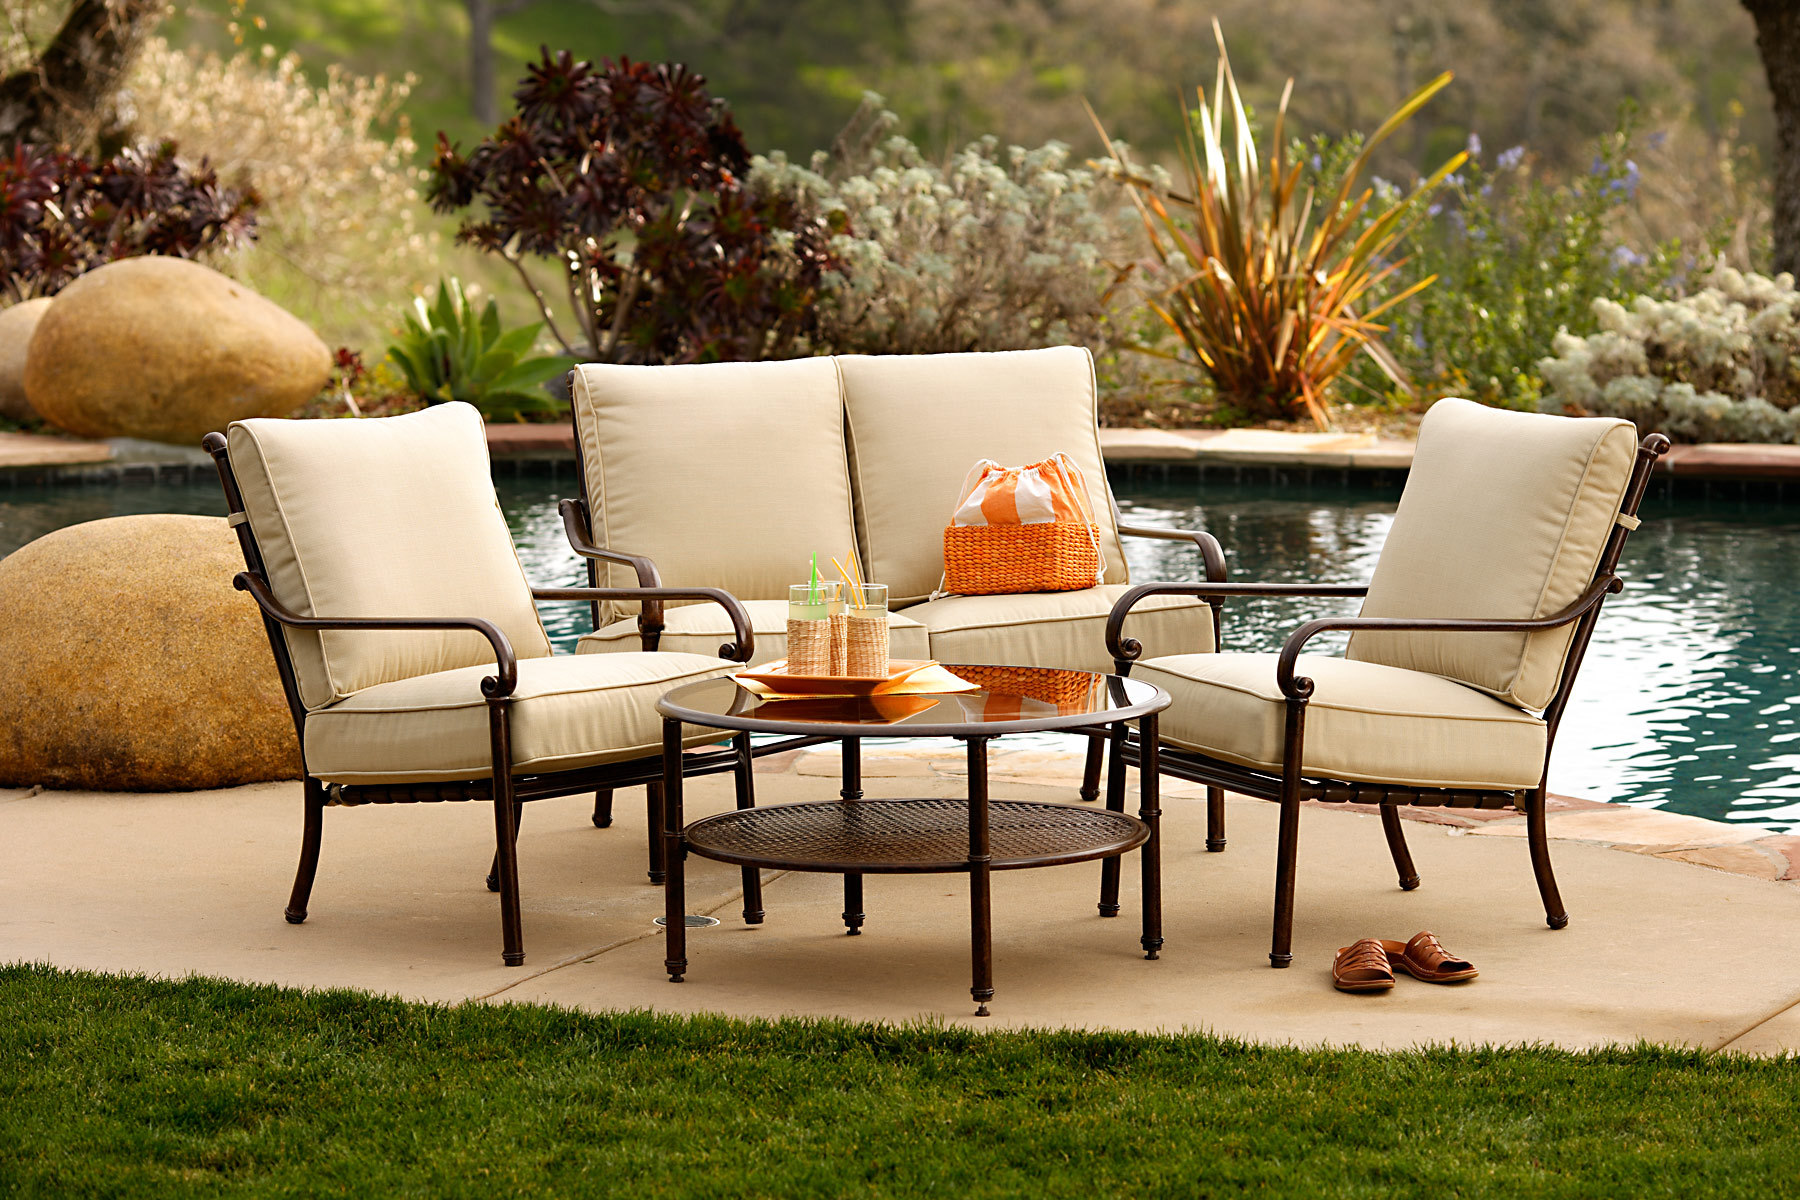 How To Clean Metal Patio Furniture Source Eva